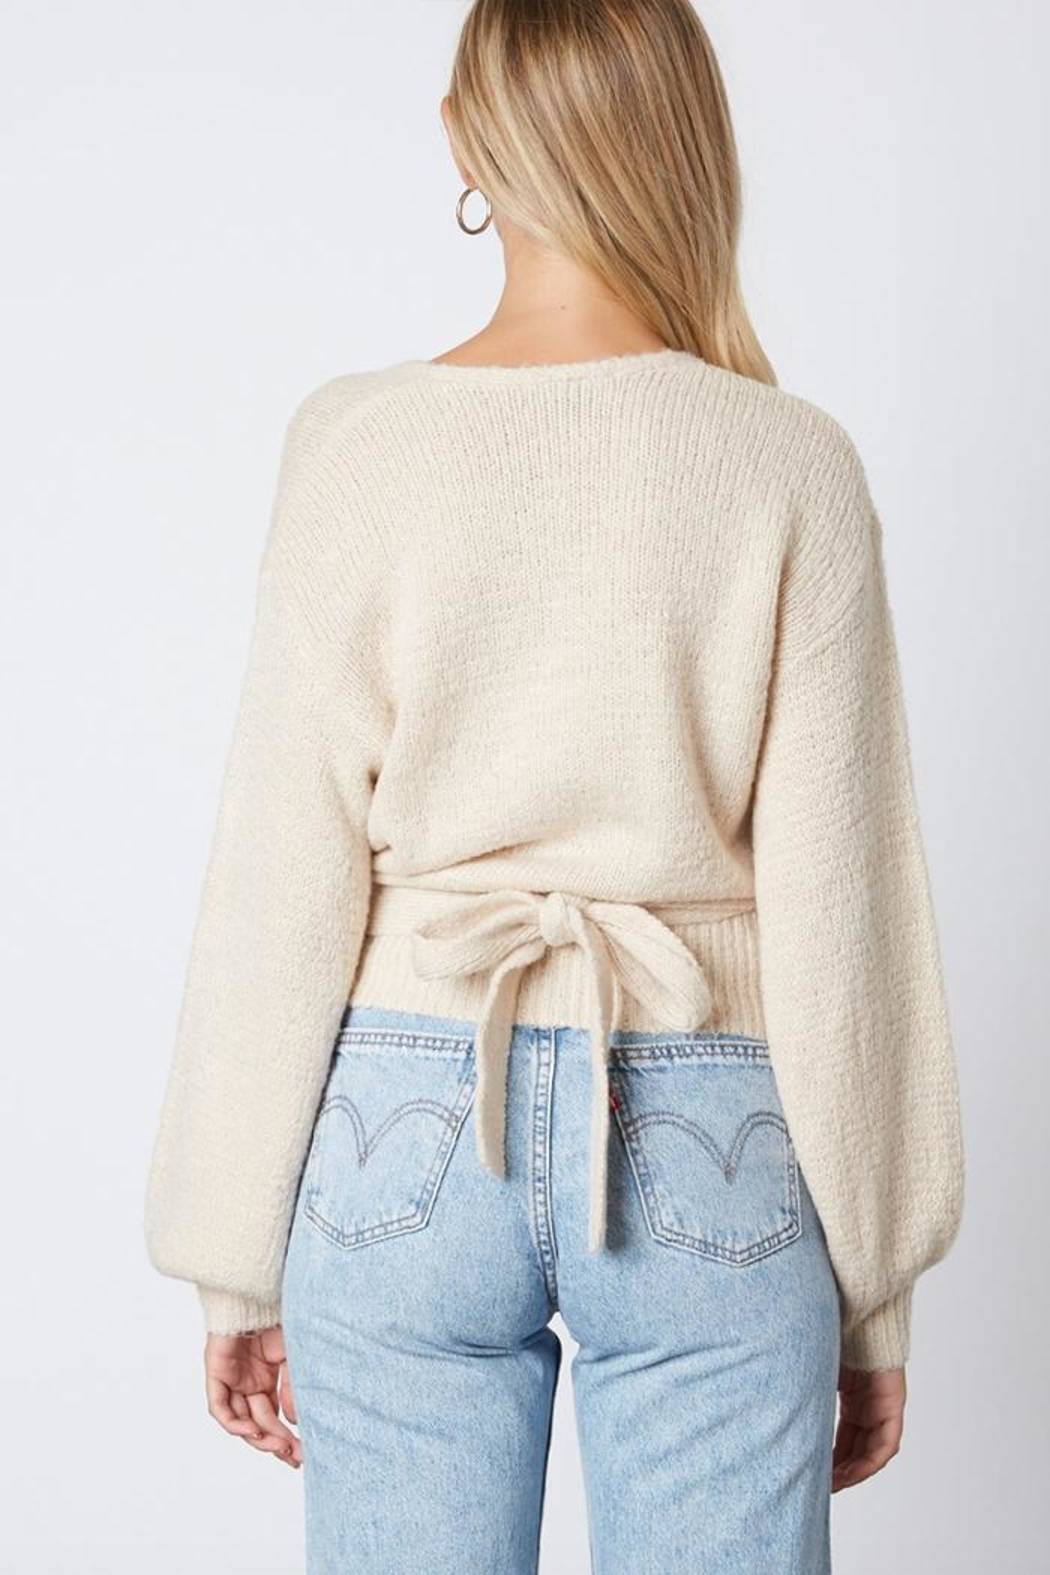 Cotton Candy LA Tie Back Sweater - Side Cropped Image